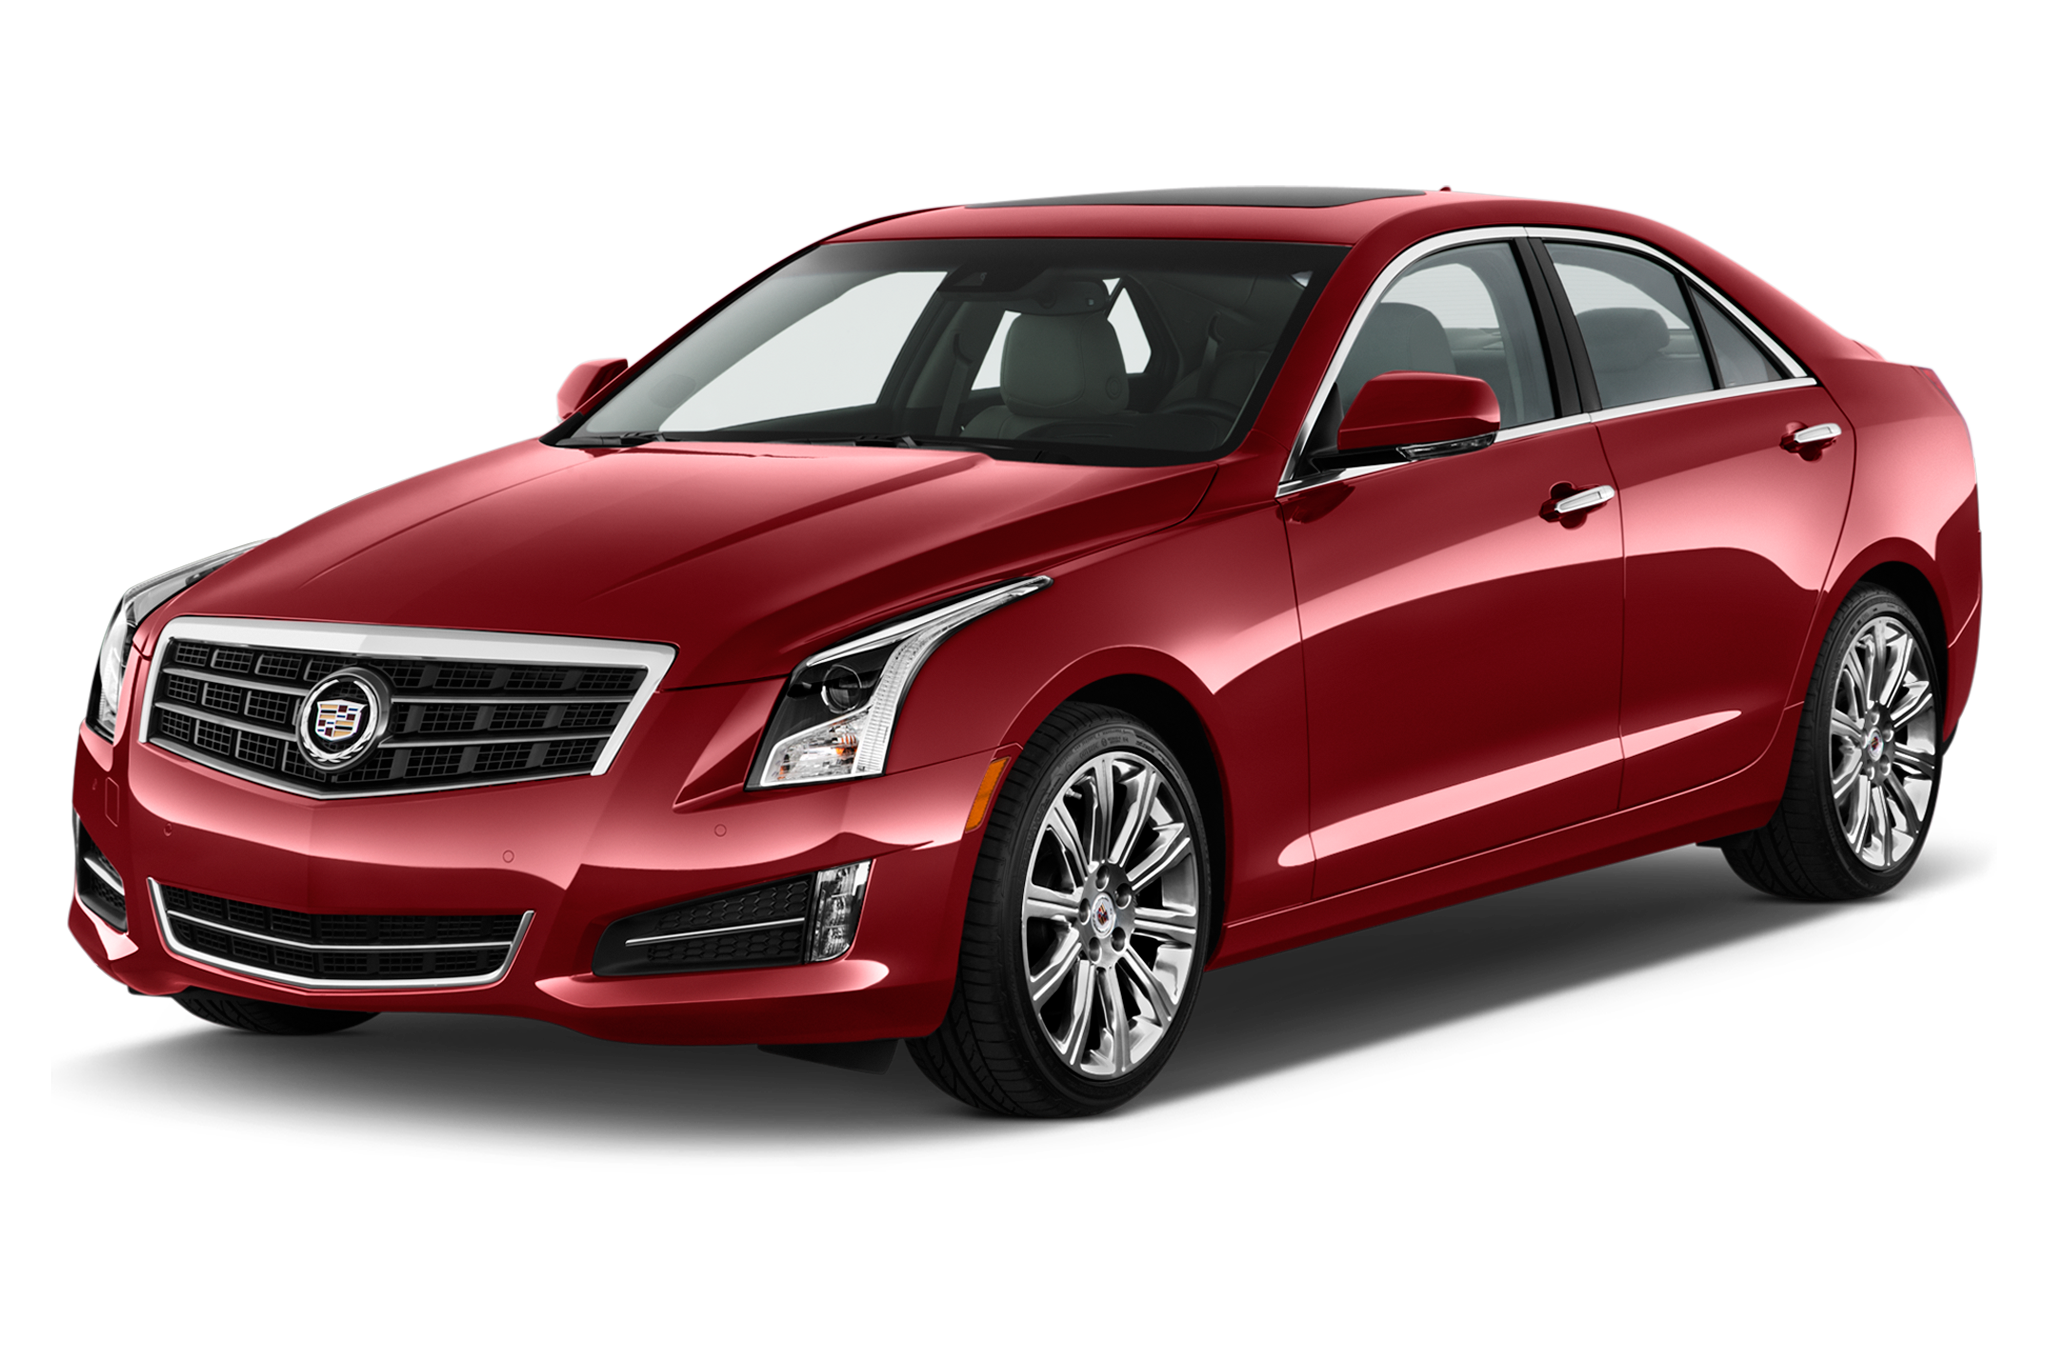 cadillac exterior e photos premium sedan oem information zombiedrive ats fq and